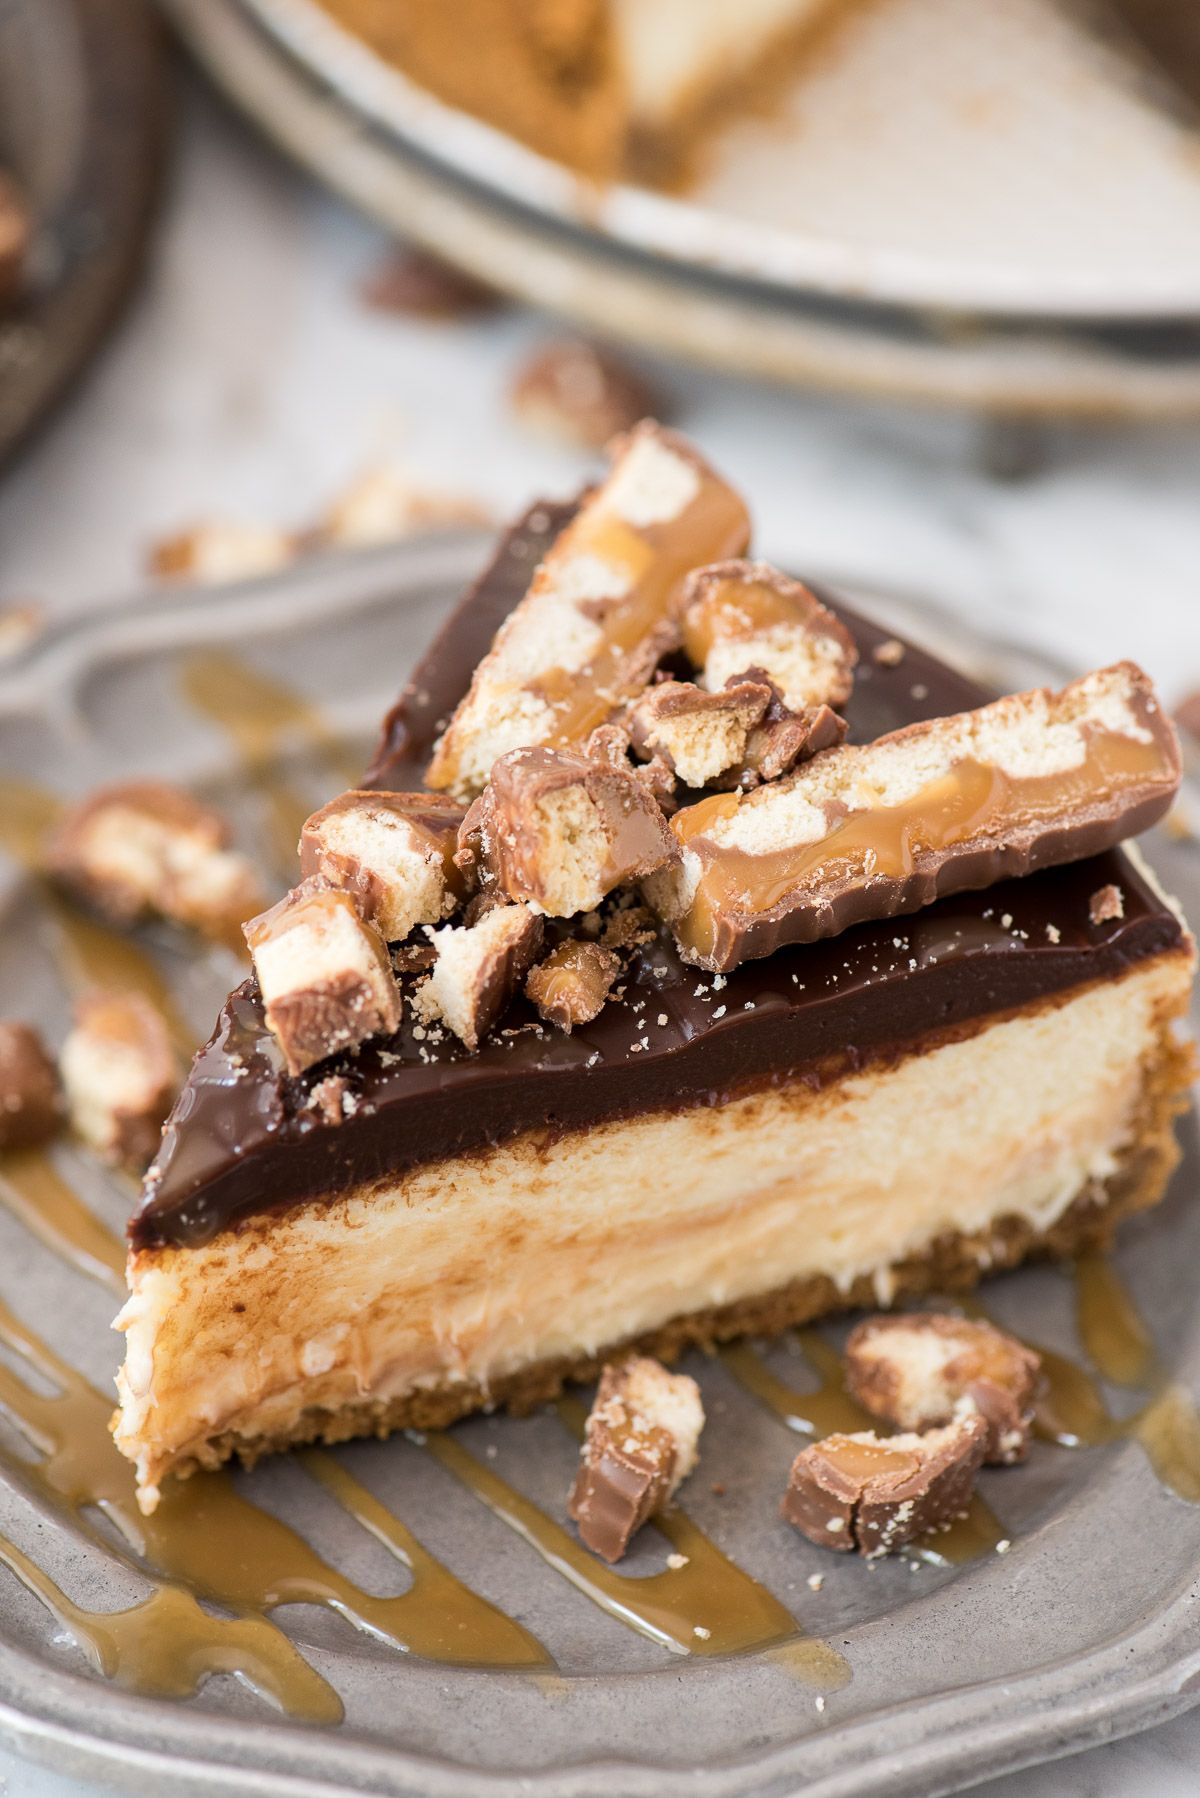 This Twix Cheesecake Has All Your Favorite Twix Flavors The Crunchy Cookie Texture From The Graham Cracker Crust The Caramel From Food Dessert Recipes Cheesecake Recipes